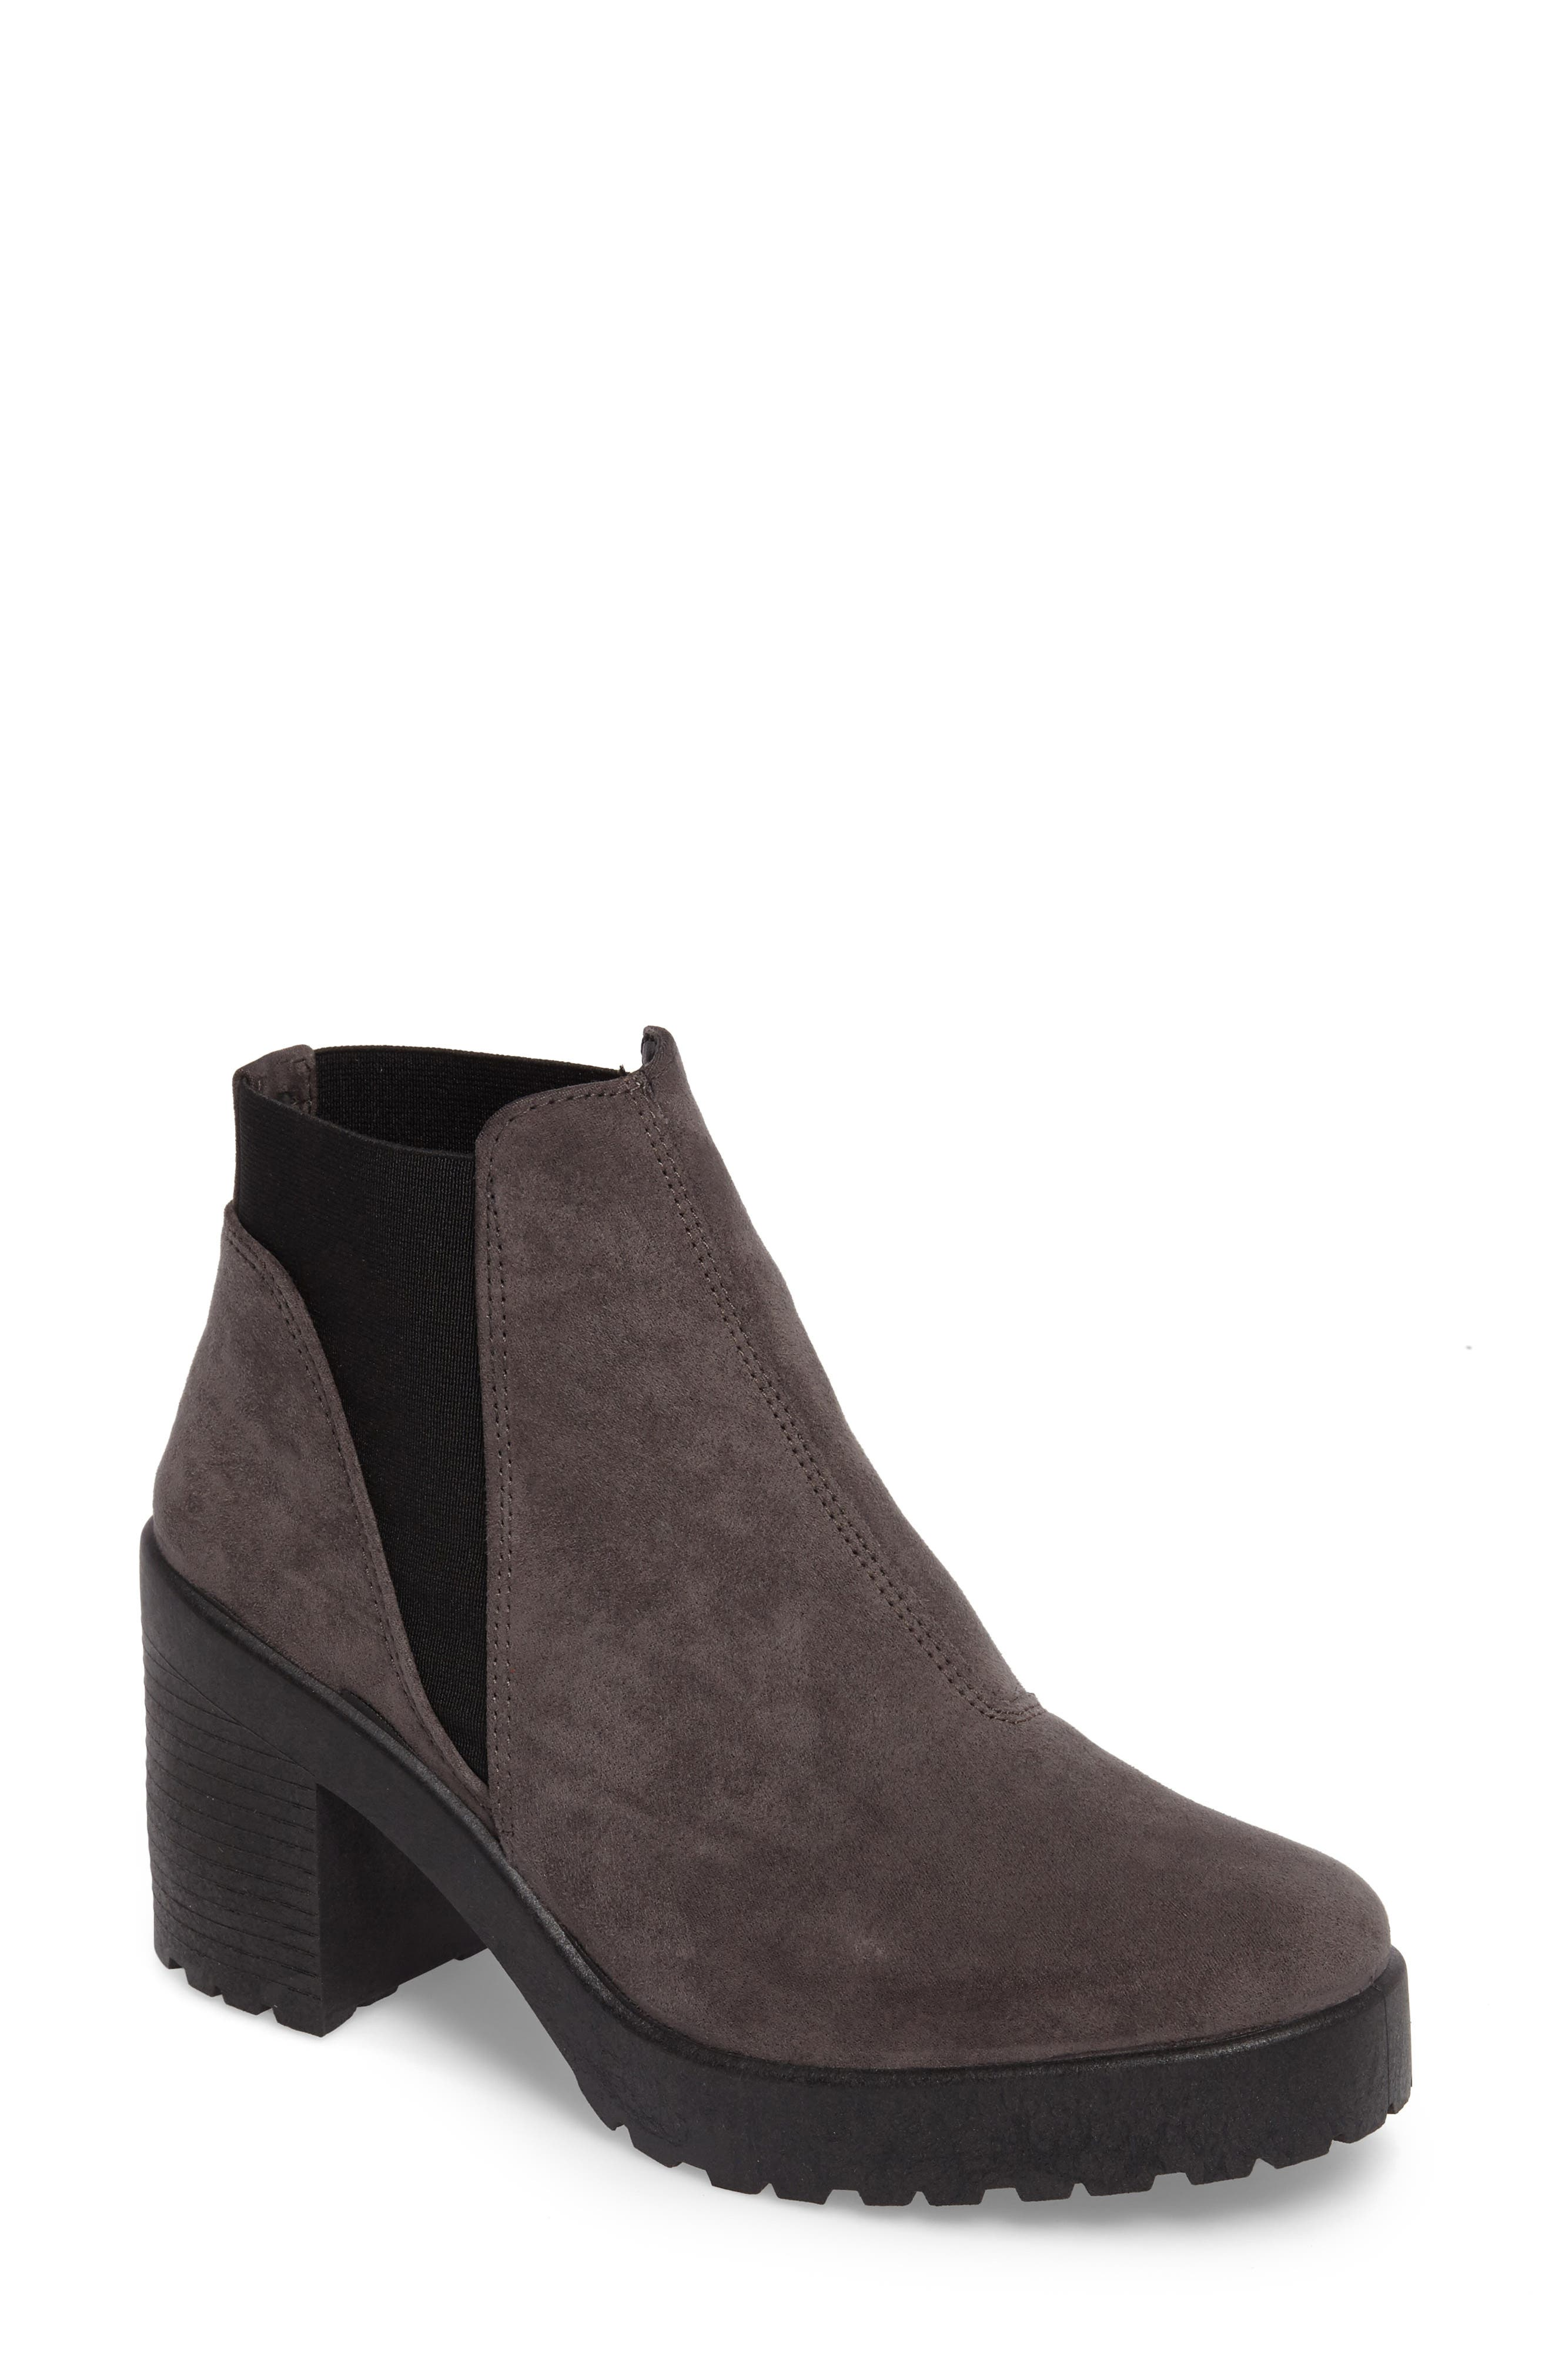 Alternate Image 1 Selected - Topshop Billie Unit Boot (Women)